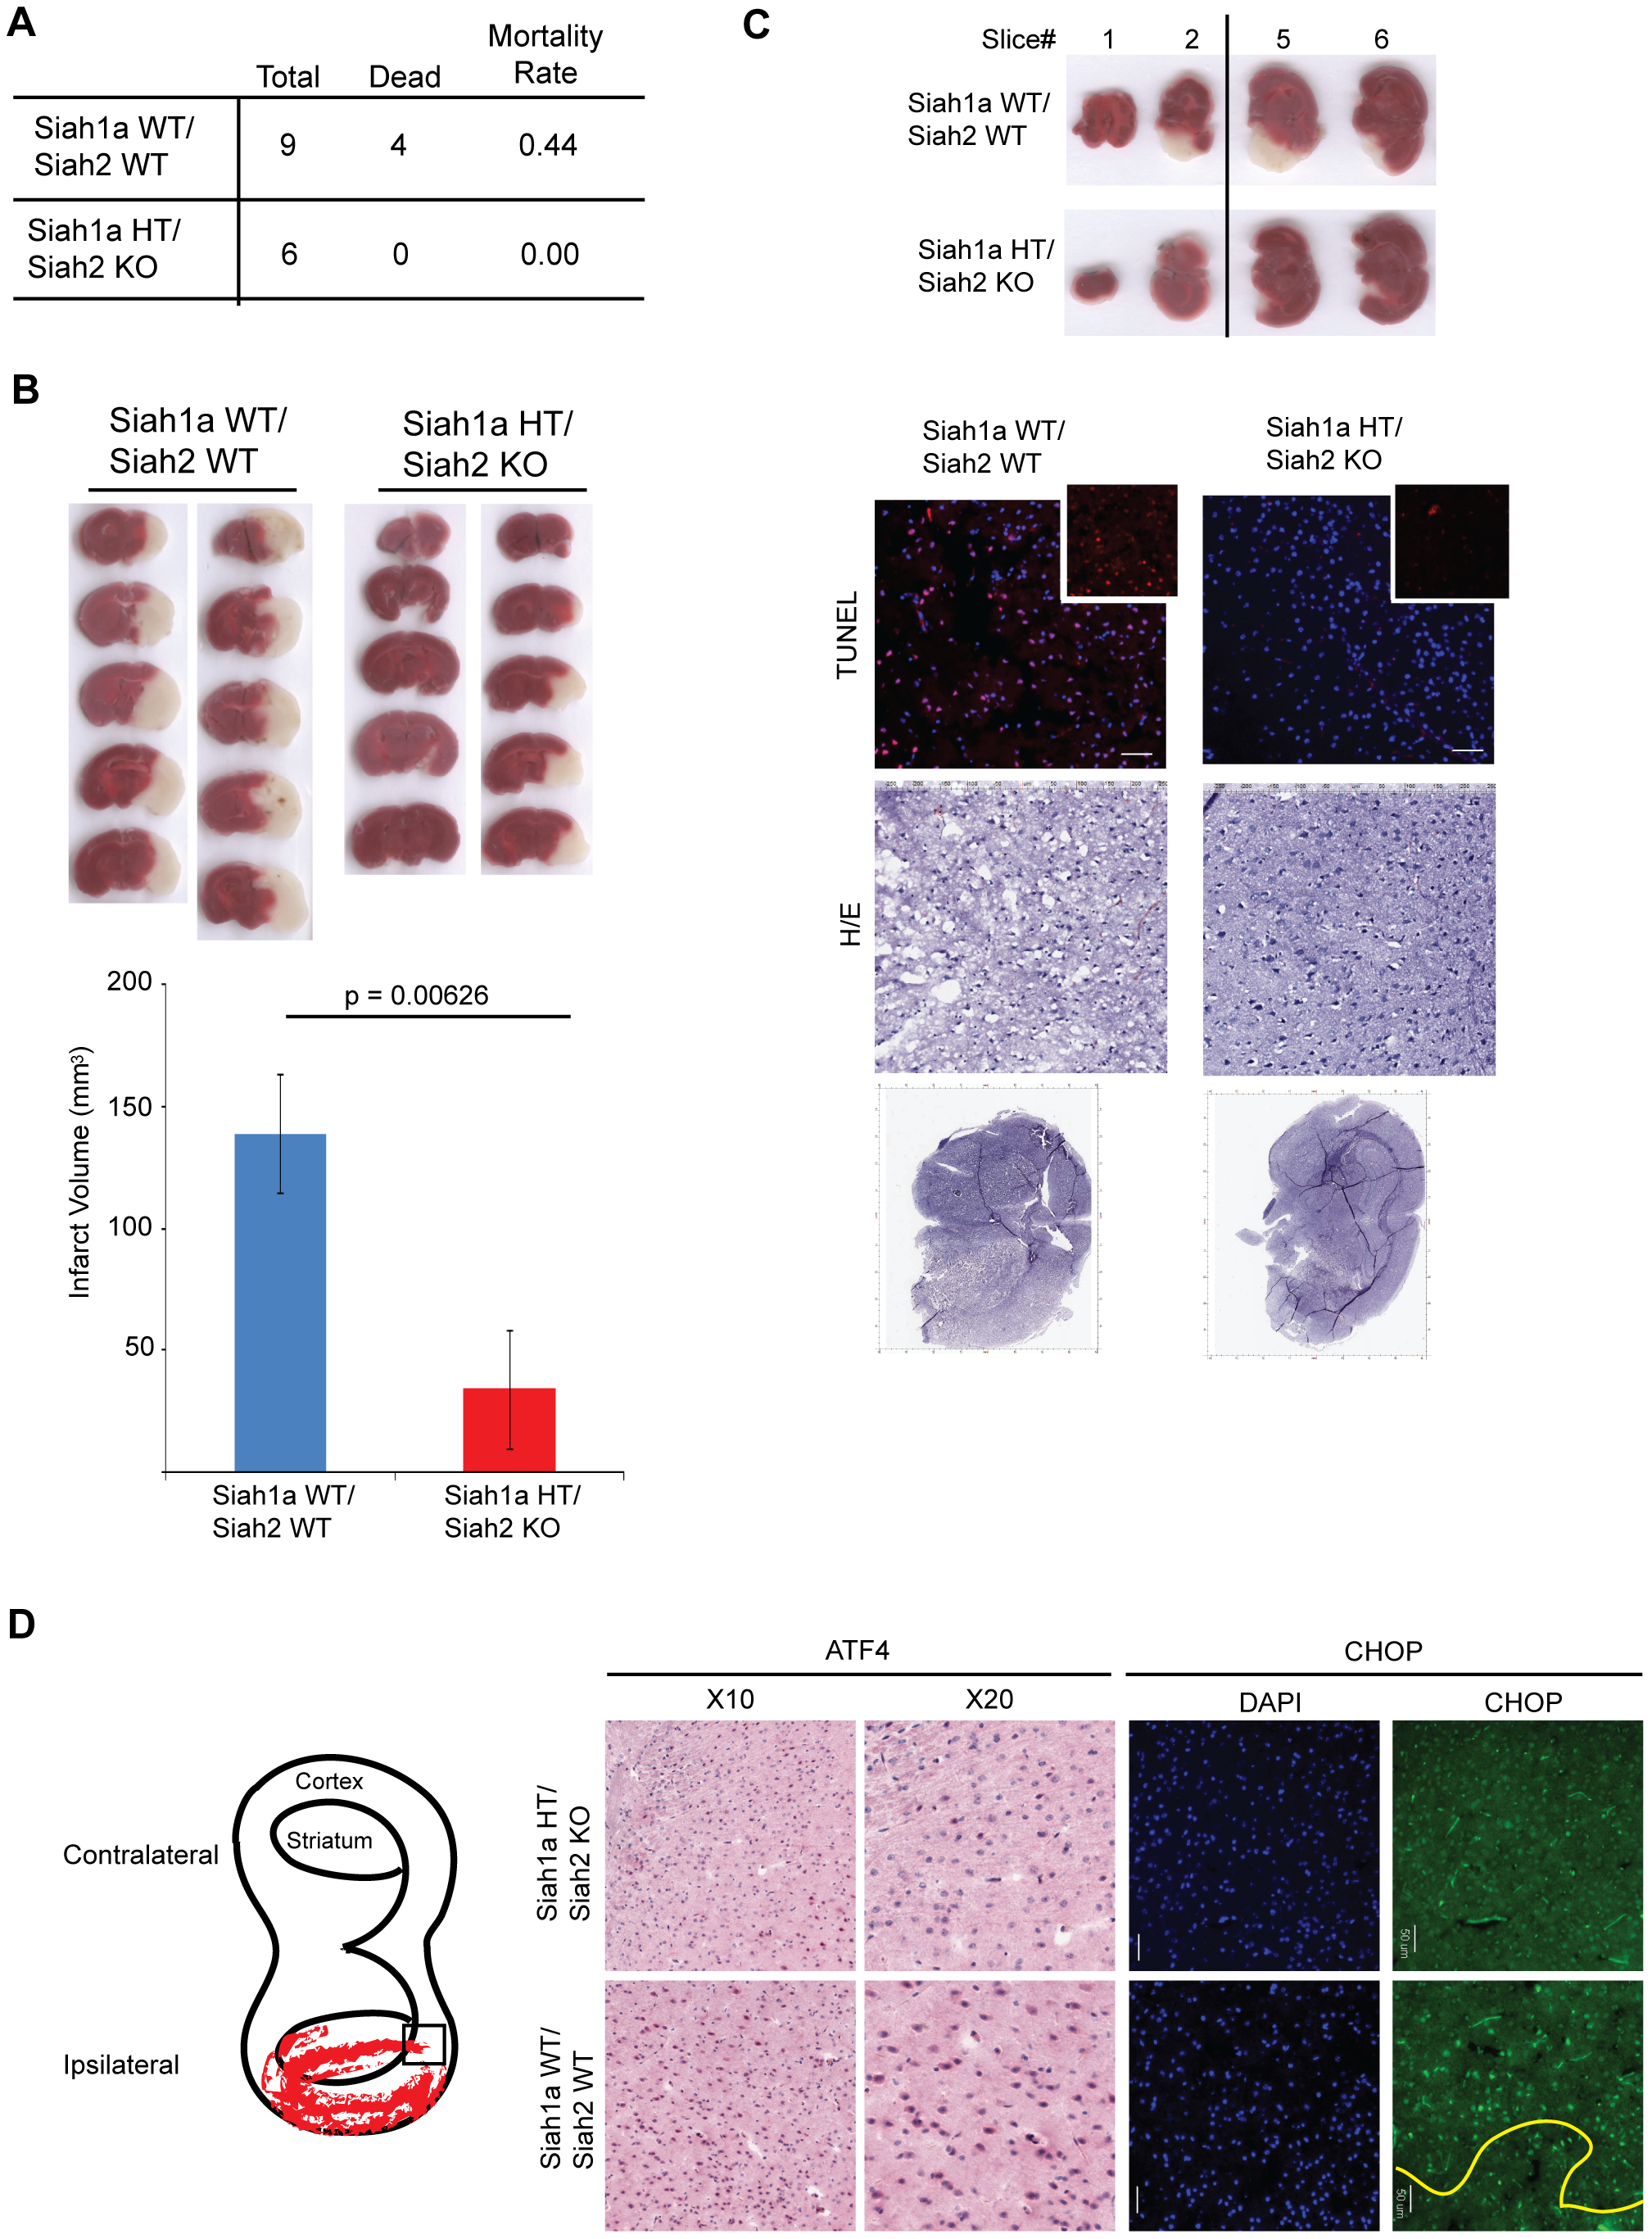 Siah1/2 mutant animals are protected from neuronal ischemia-induced cell death.